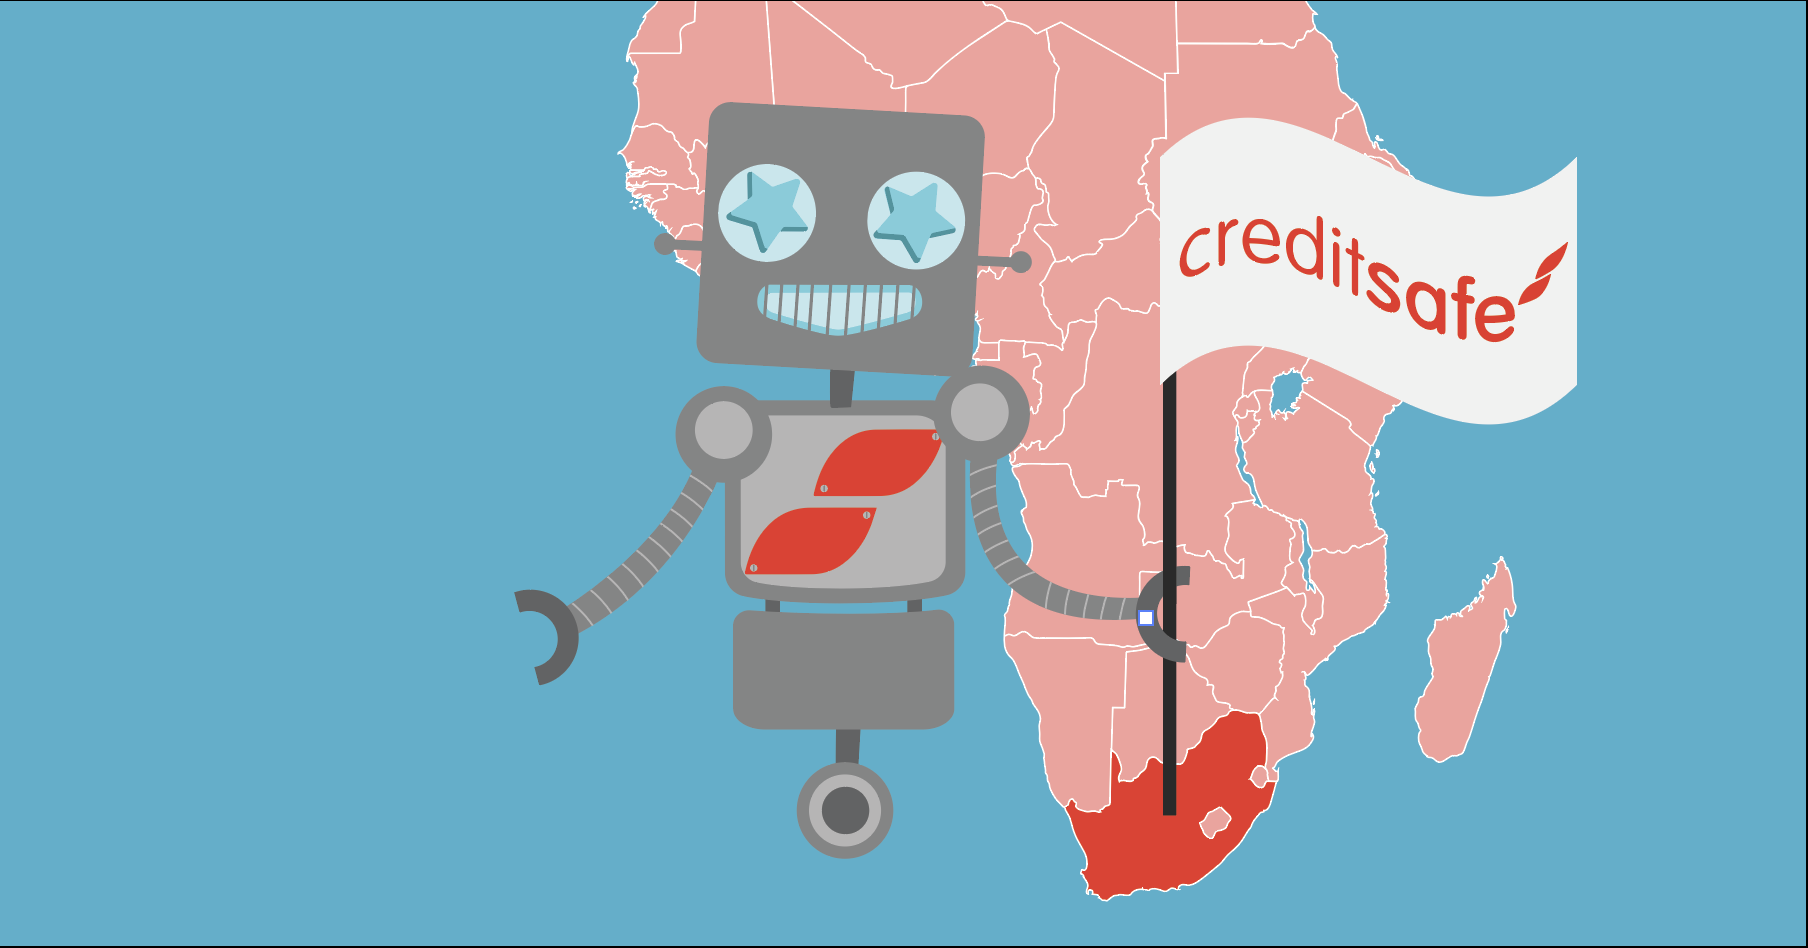 creditsafe in south africa